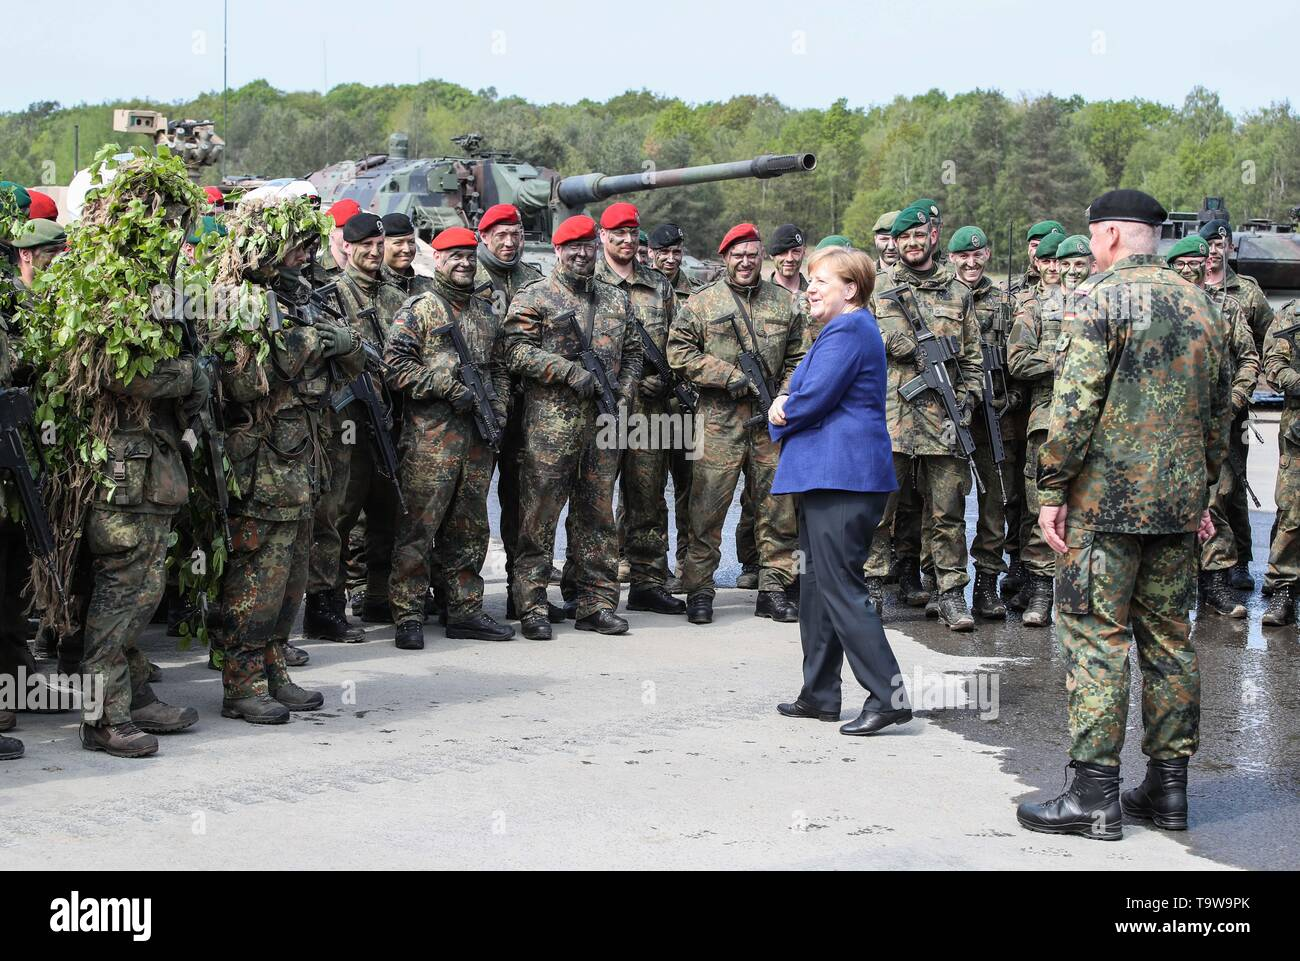 Munster, Germany. 20th May, 2019. German Chancellor Angela Merkel (2nd R, Front) talks with members of NATO'S Very High Readiness Joint Task Force during her visit in Munster, Germany, on May 20, 2019. Merkel on Monday assured Germany's help for Ukraine to solve the conflicts in its Donbas region. She made the statement during her visit to a rapid reaction force of NATO in Germany's Munster. Credit: Shan Yuqi/Xinhua/Alamy Live News - Stock Image